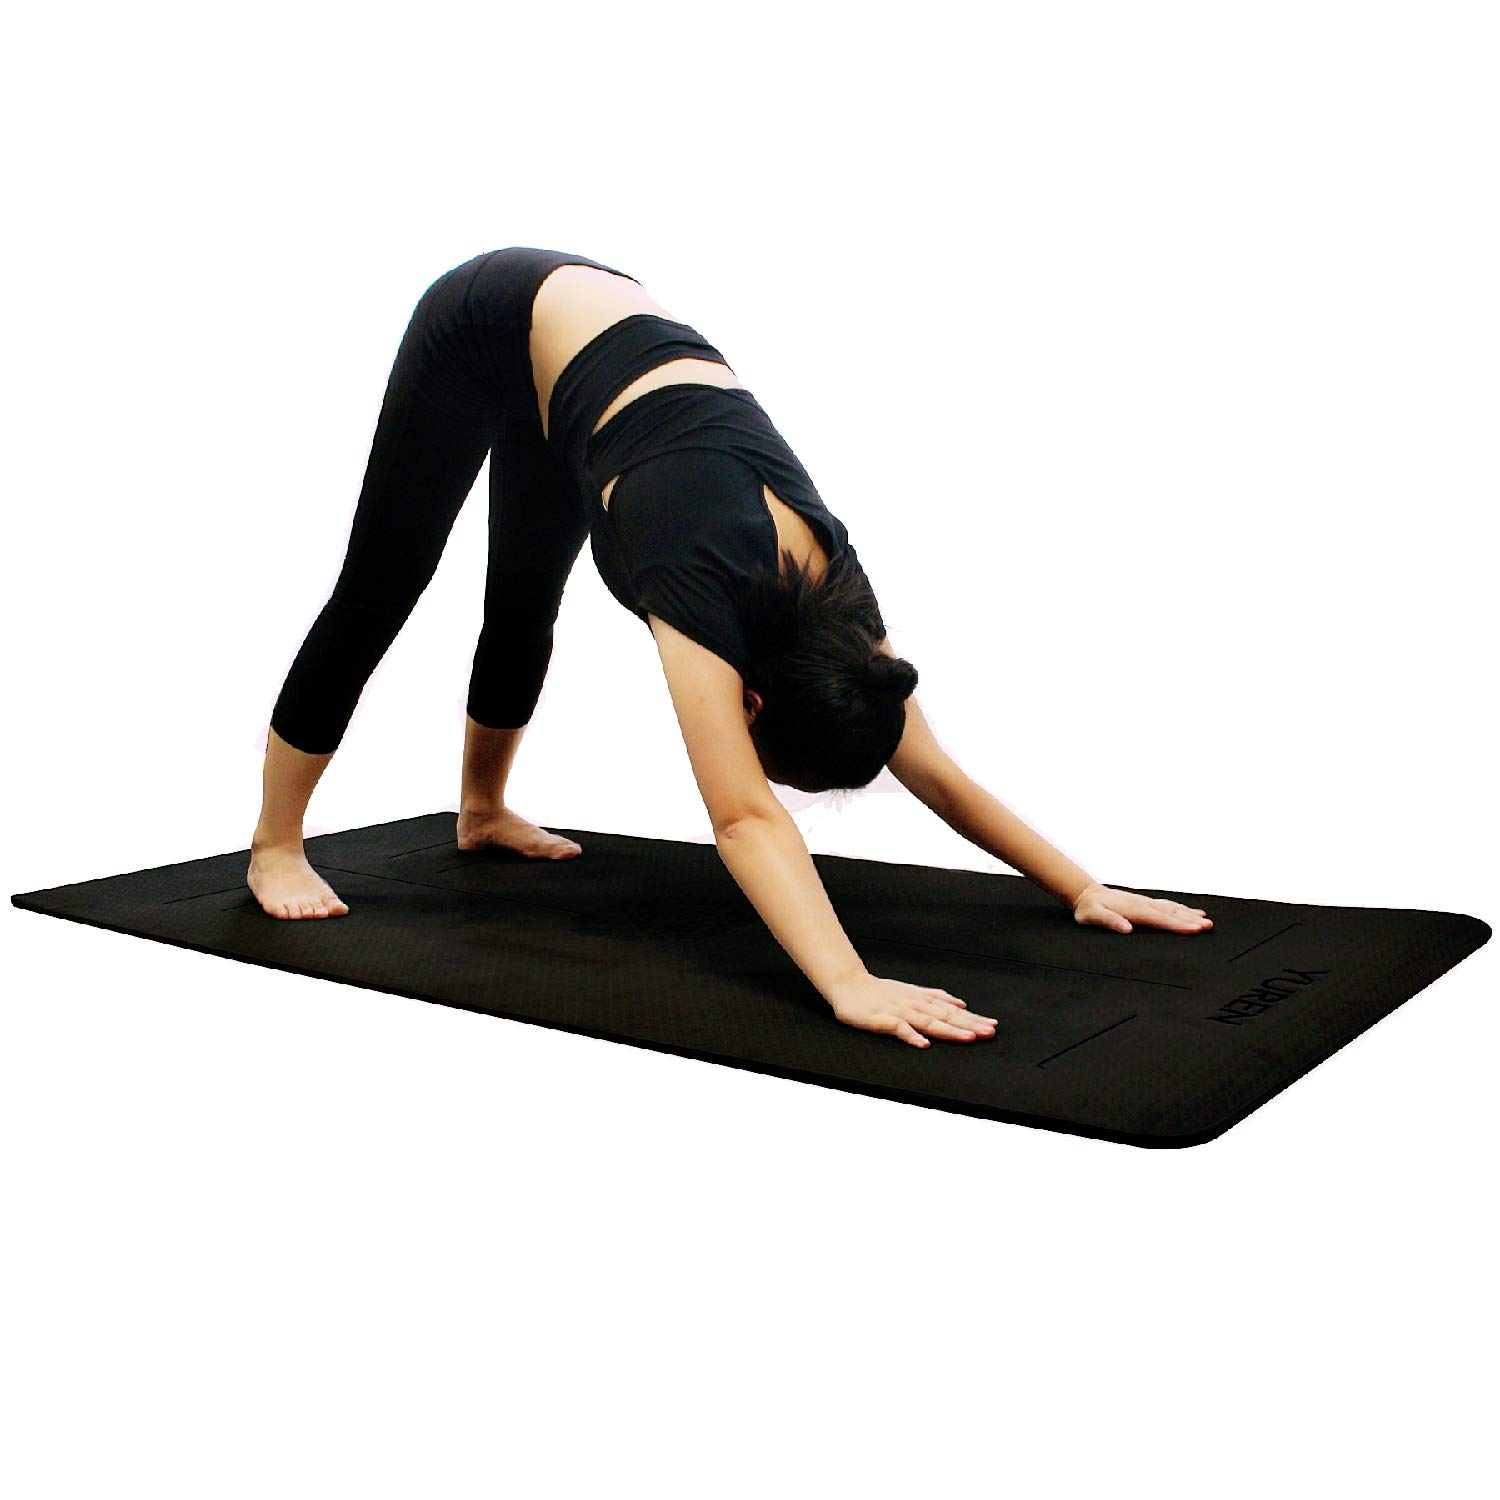 Amazon.com: Yuren esterilla de yoga grosor 10 mm. colchoneta ...